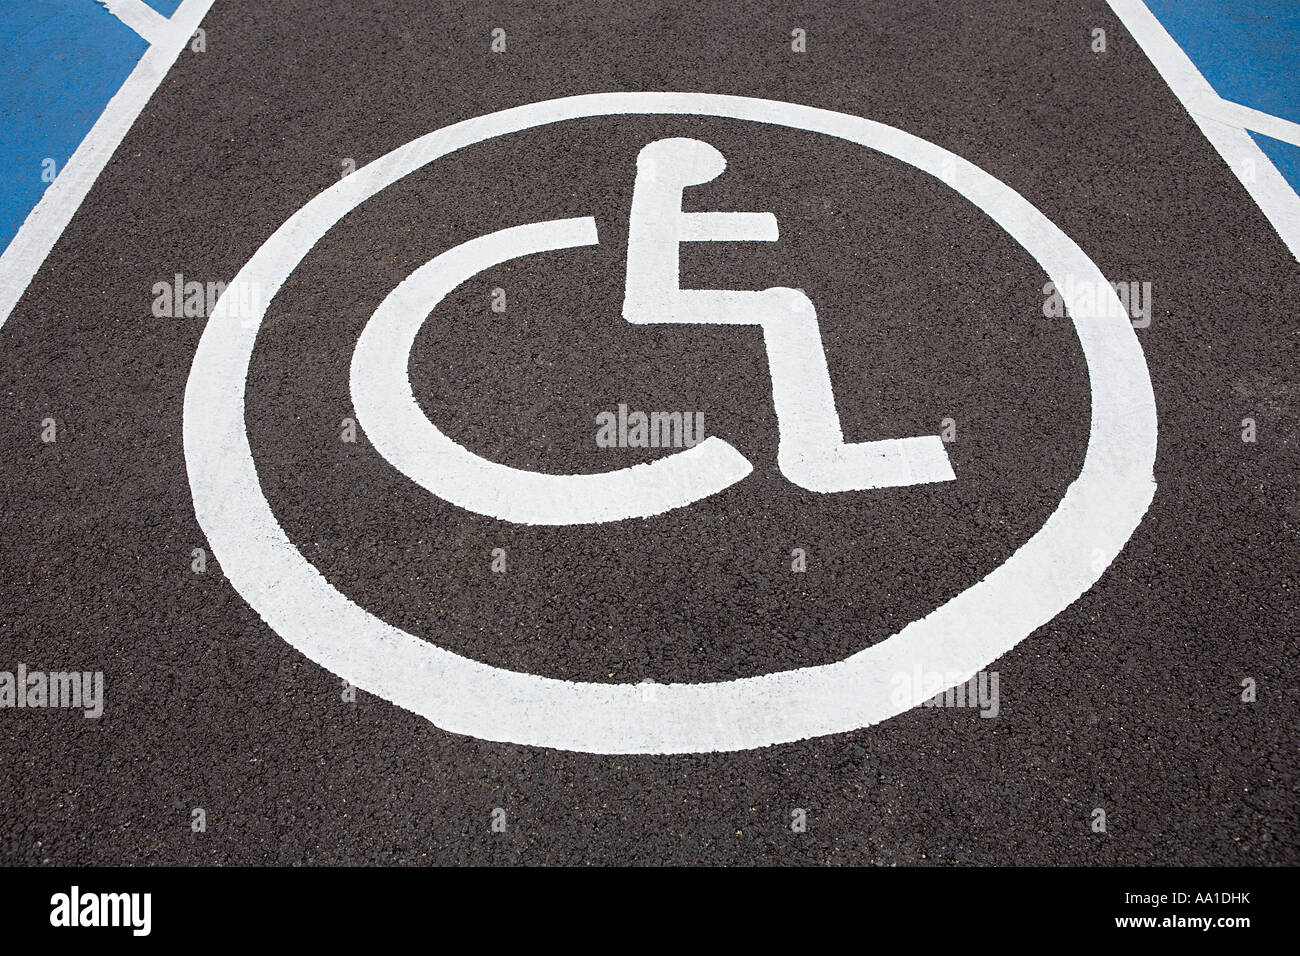 Disability parking space - Stock Image